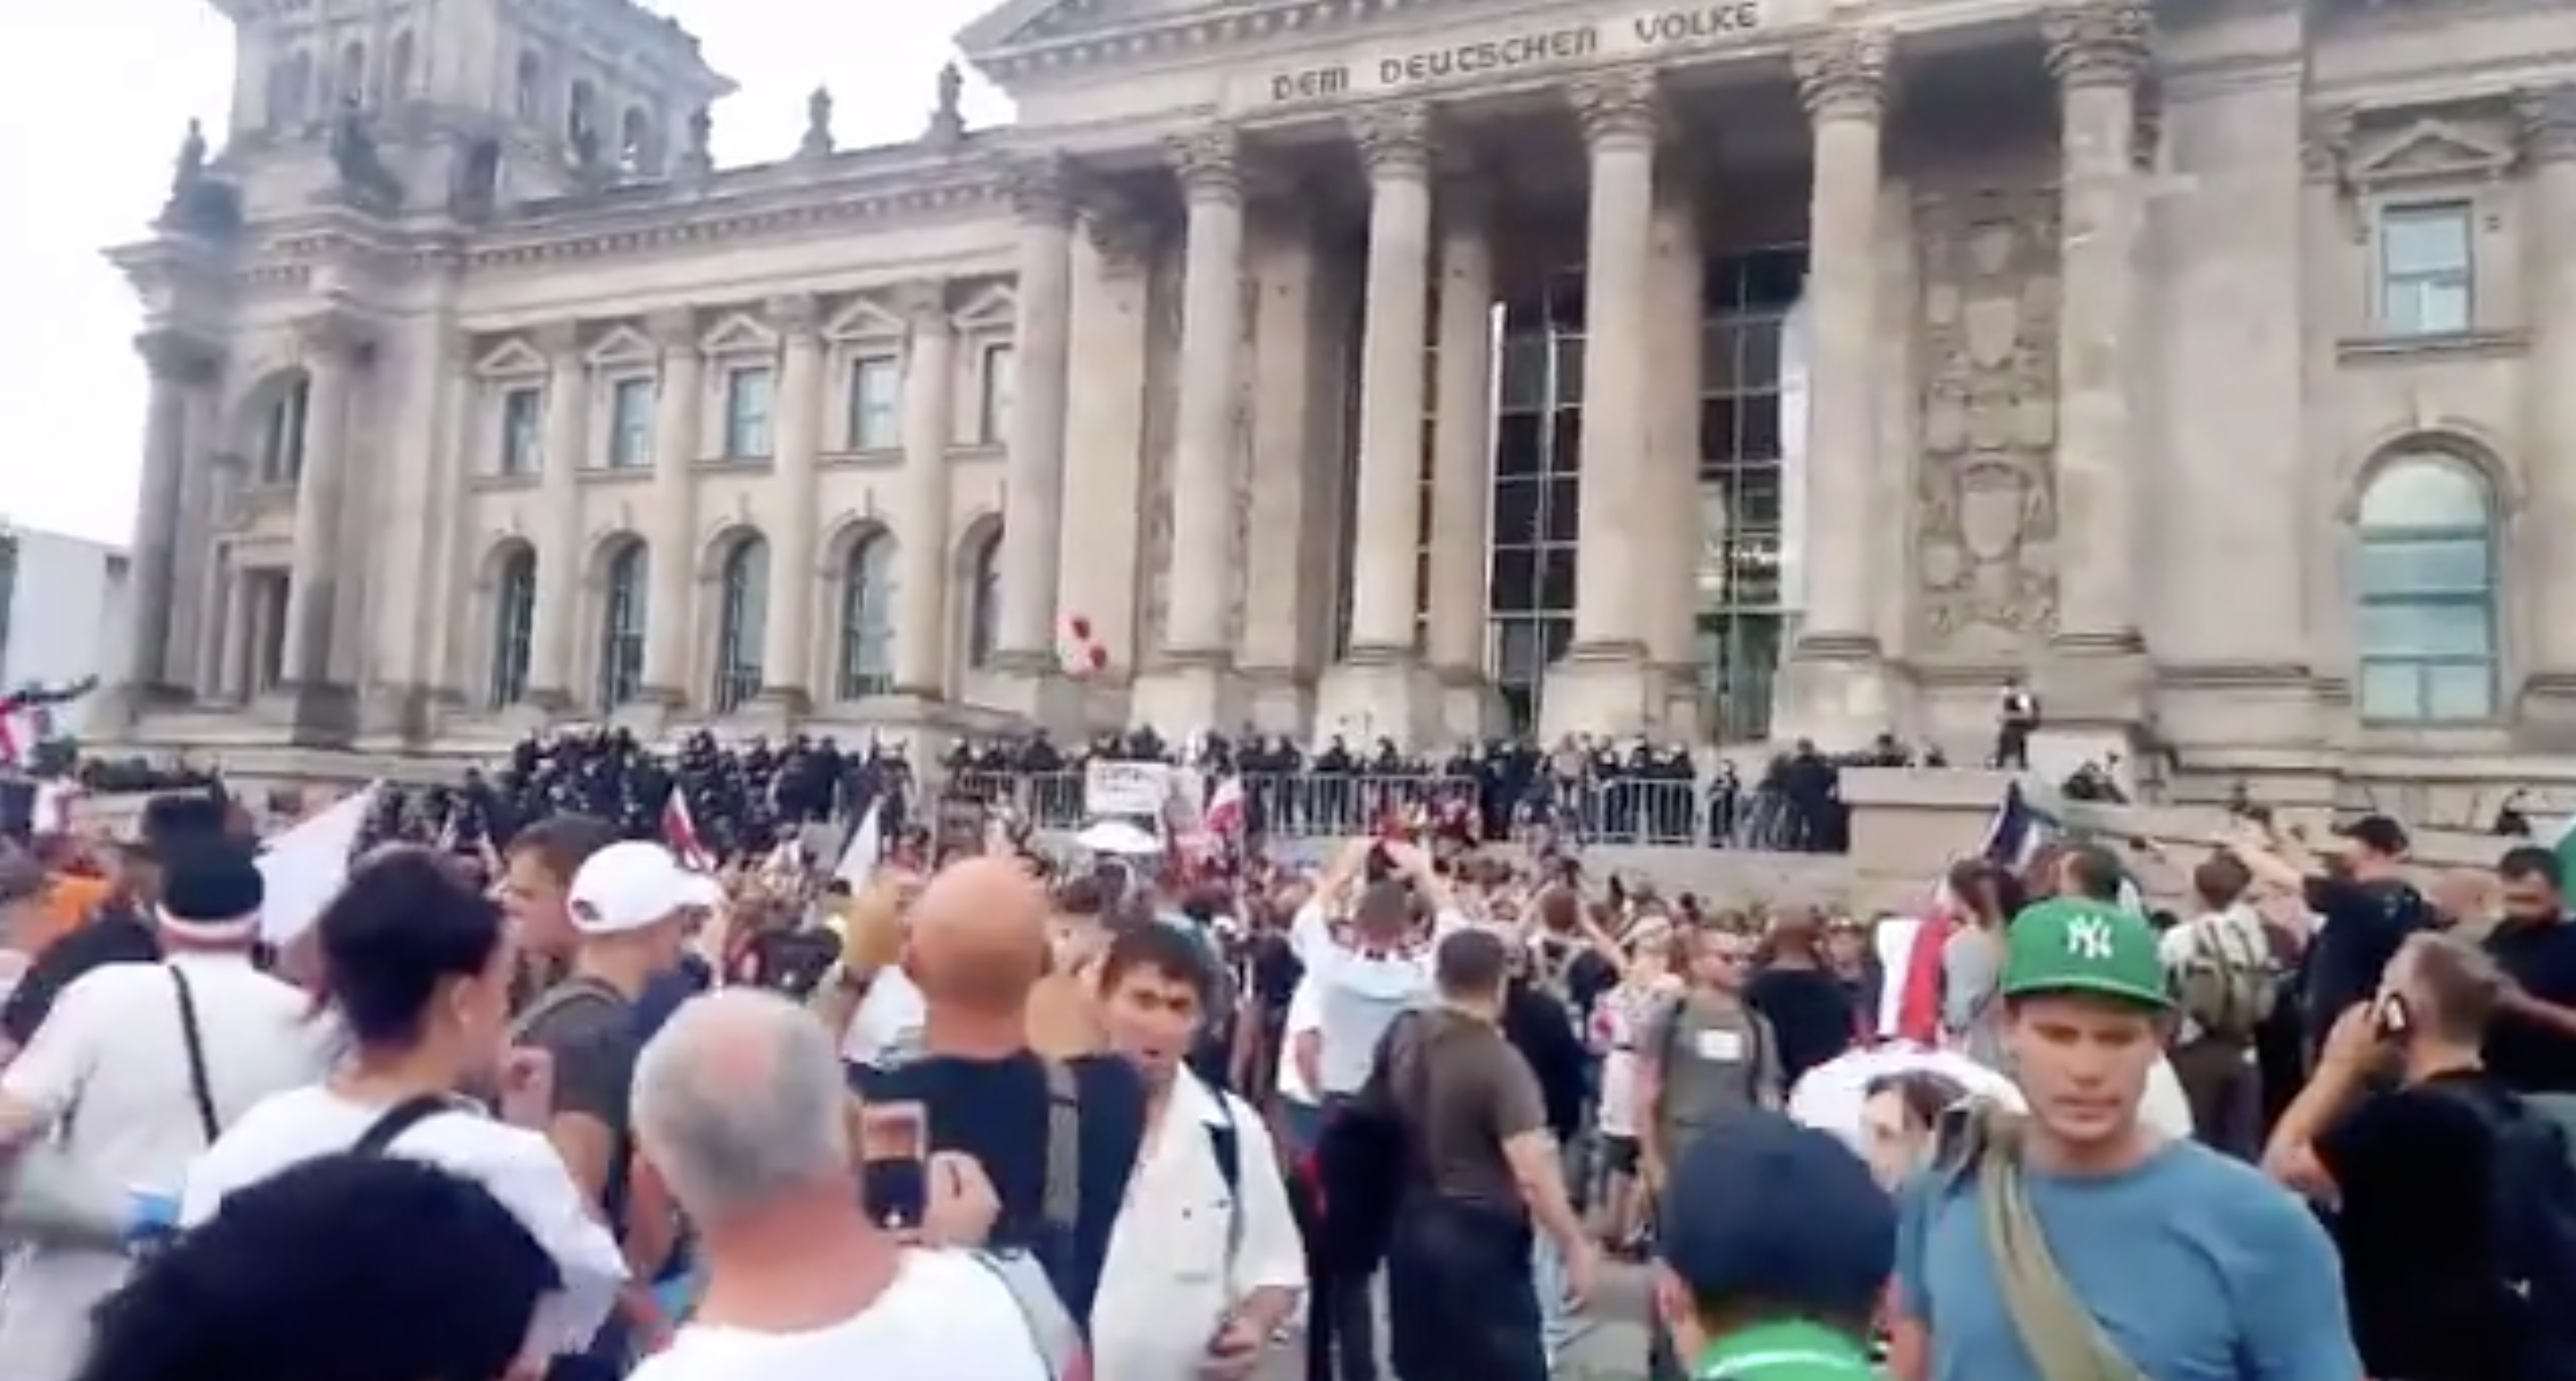 Protests in front of Germany's parliament, August 2020